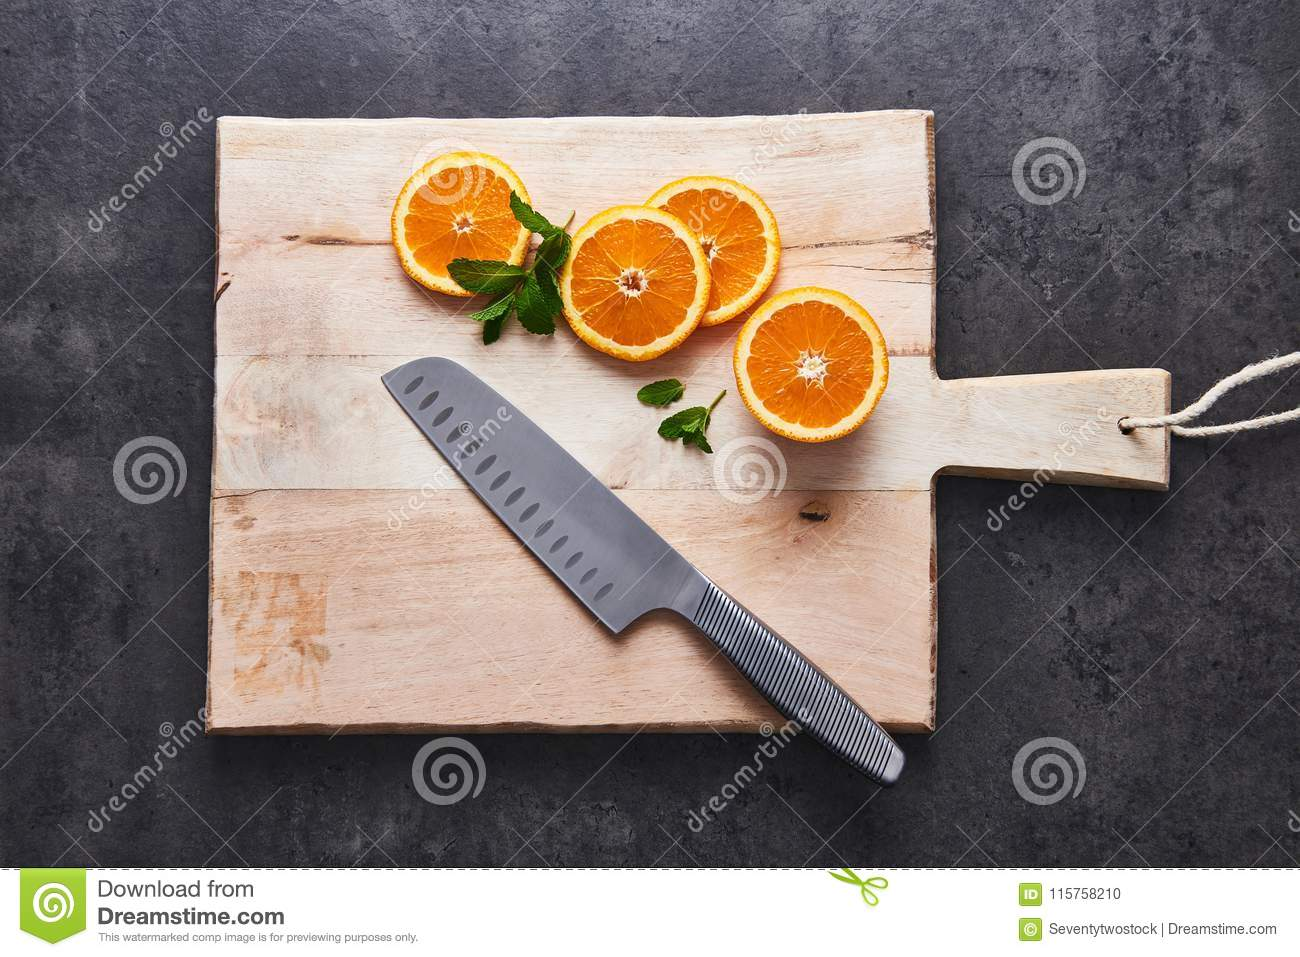 Fresh citrus fruits, half cut orange slices on cutting board with knife on dark stone background, flat lay